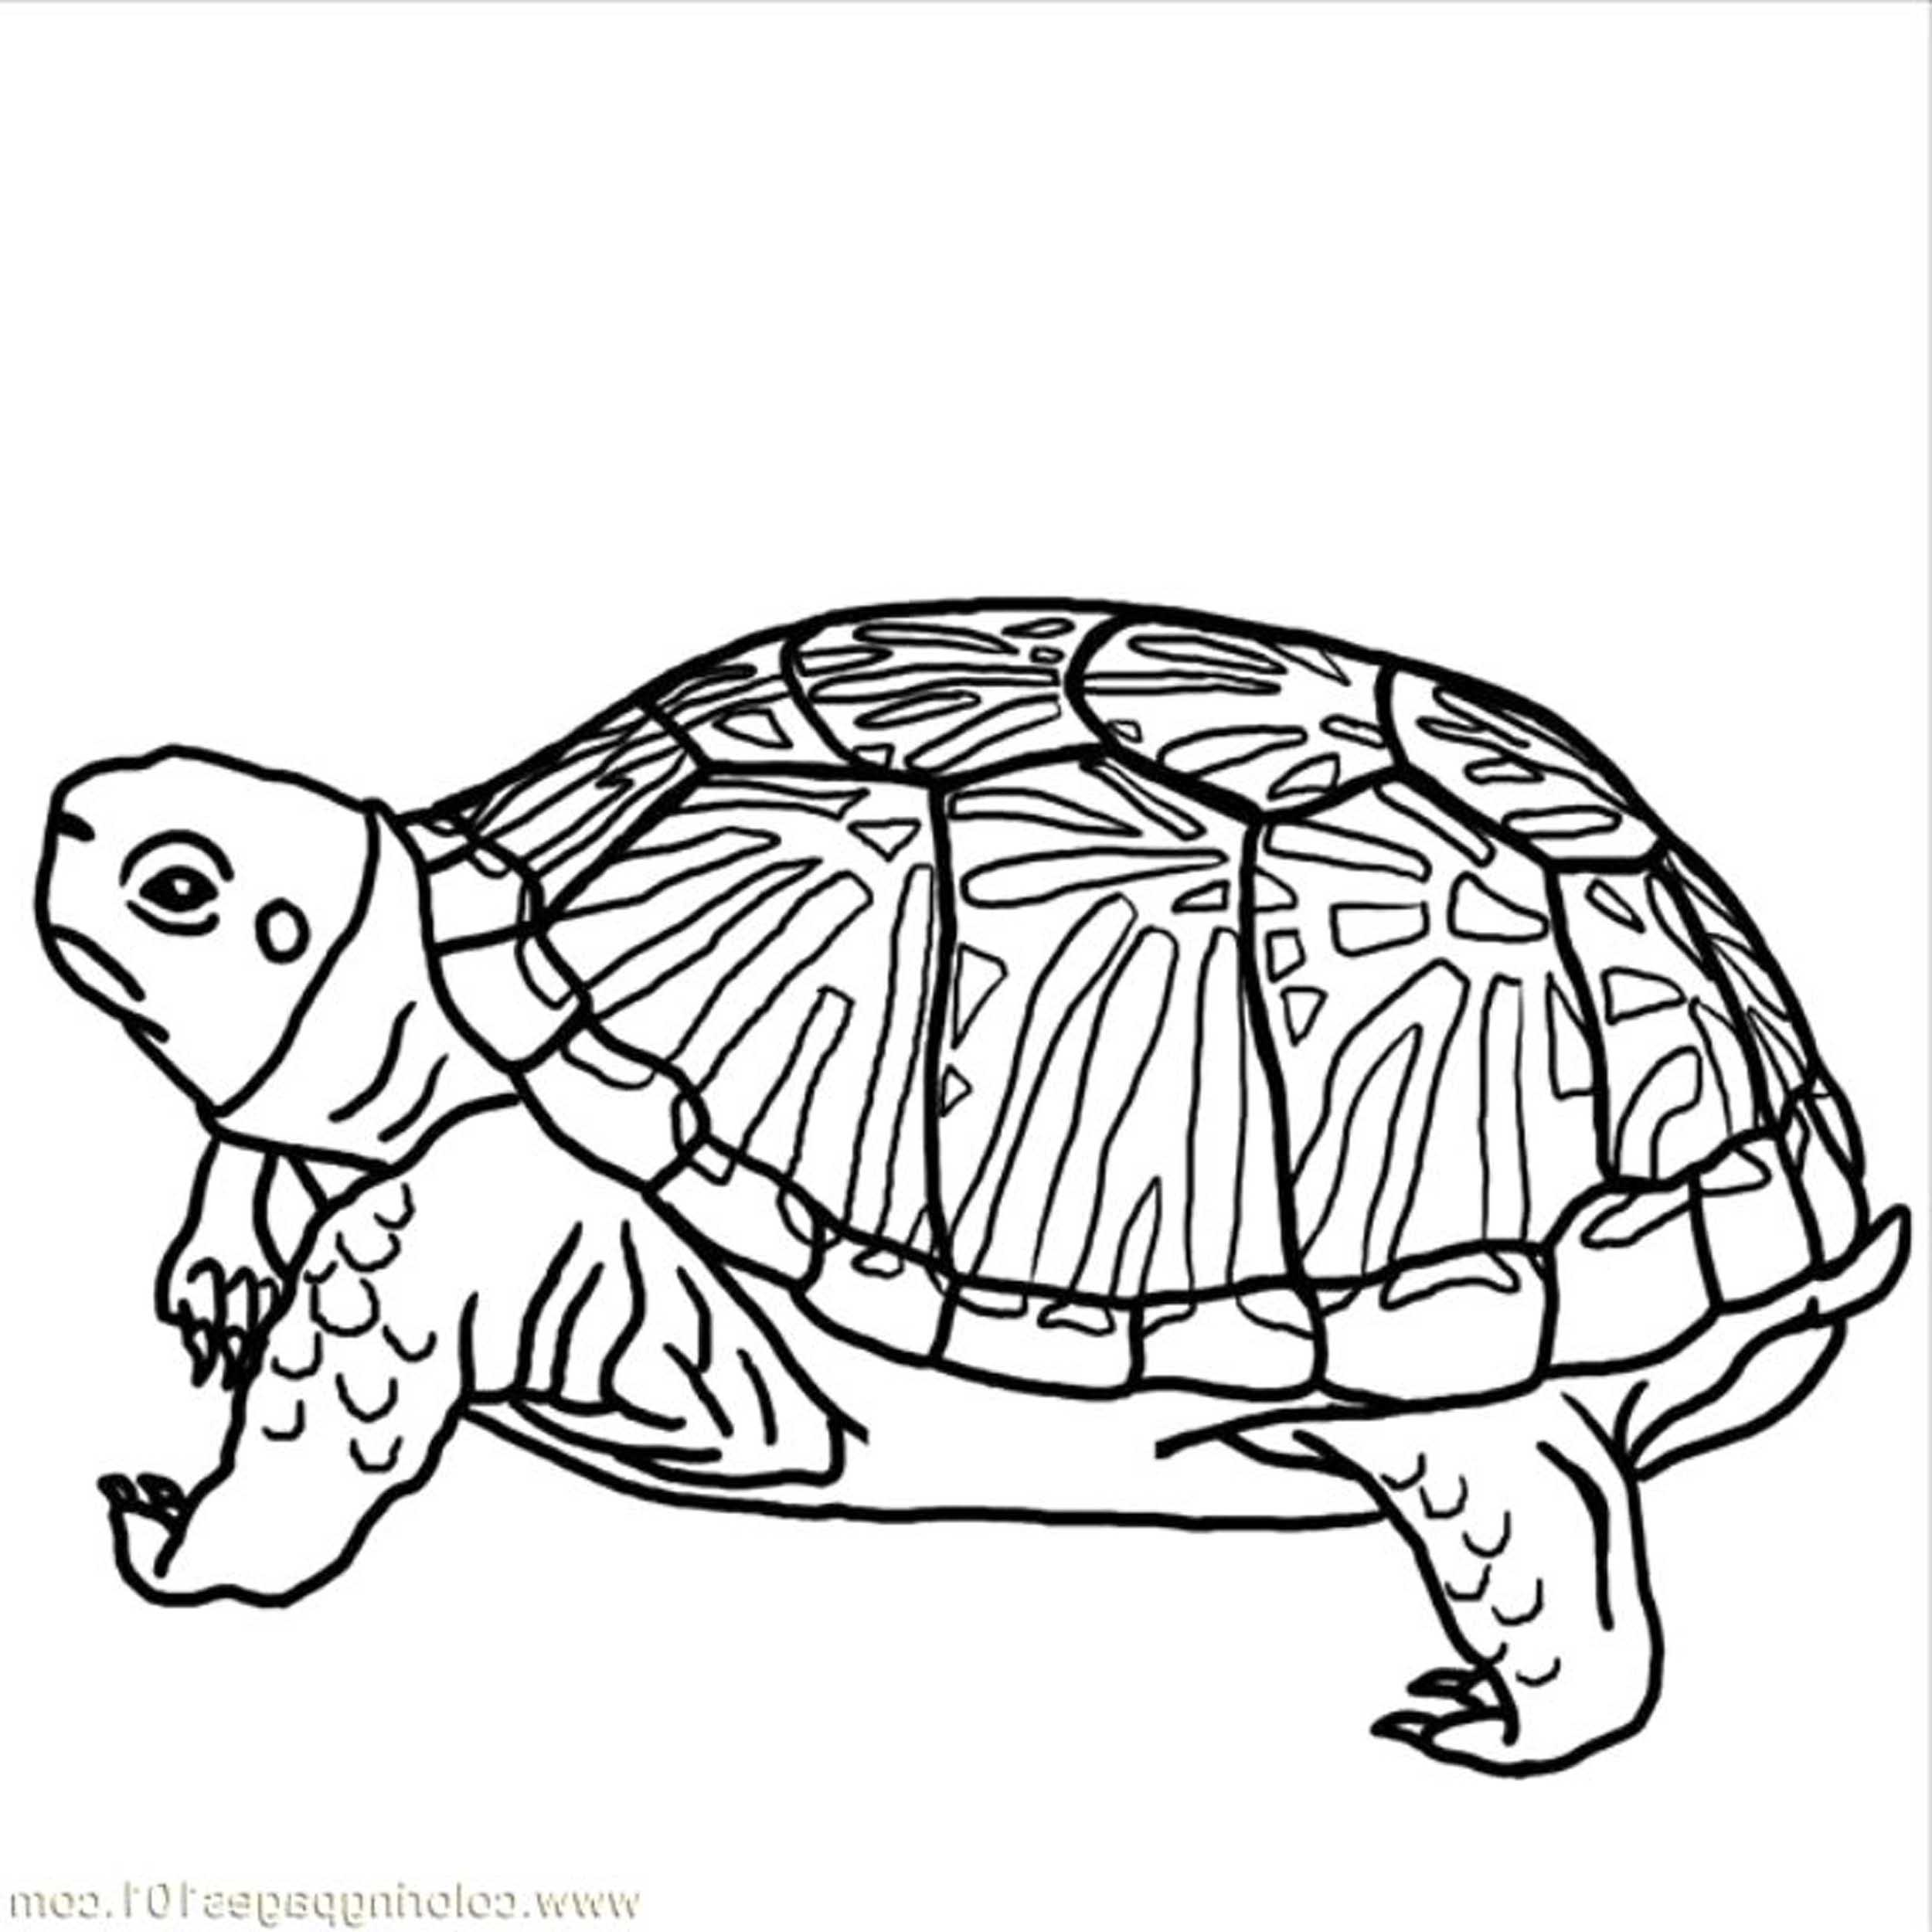 turtle coloring book page cute turtle coloring pages coloring book page turtle